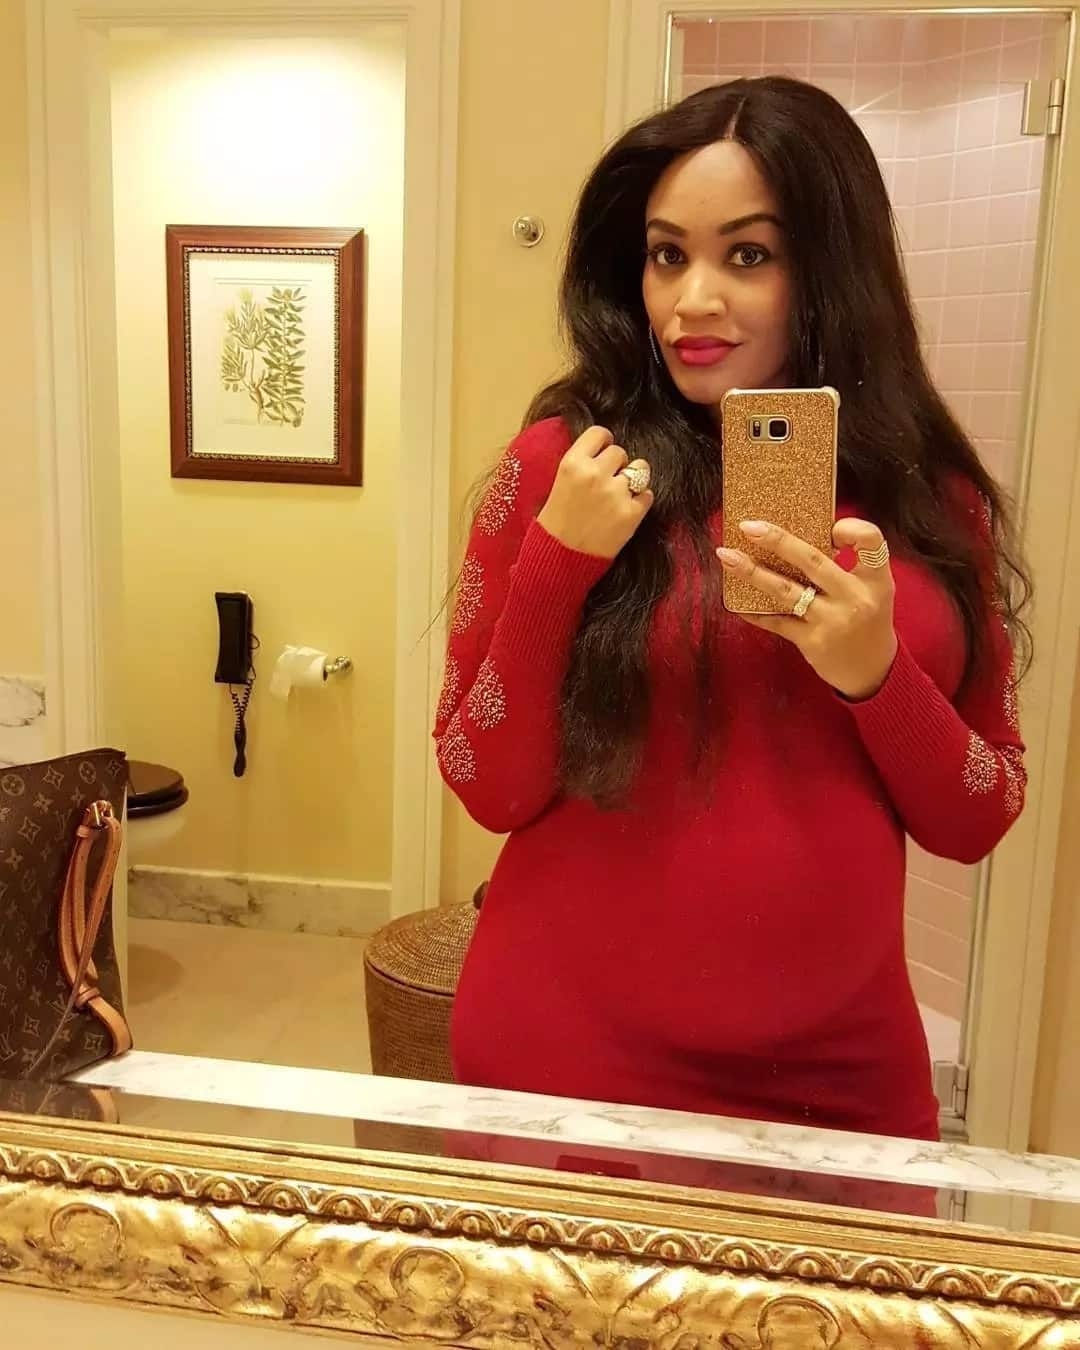 Our daughter had even reduced your big lips -  Ugandan's go hard on Diamond after break up with Zari